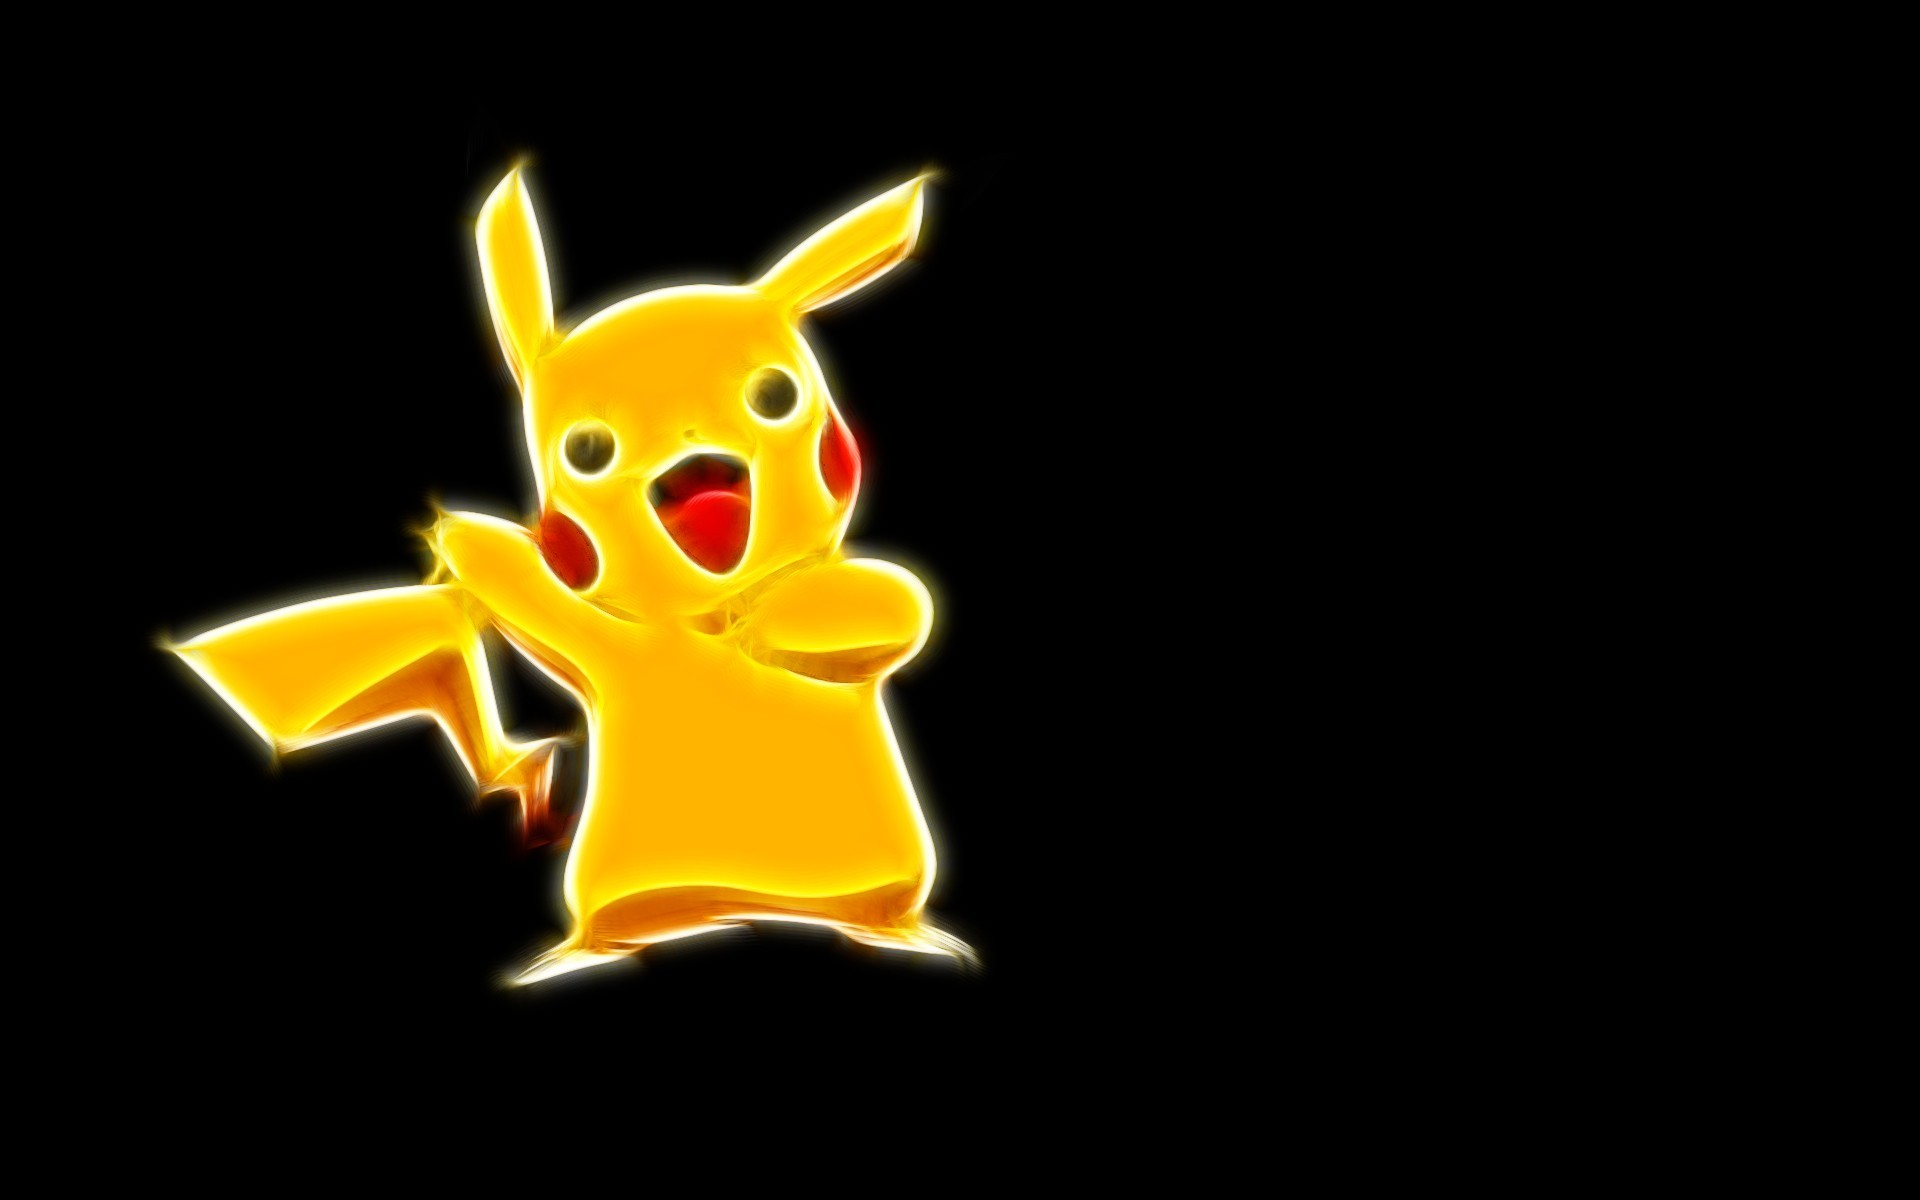 Ice Cream Wallpaper Hd 1080p Pikachu Wallpapers Hd Pixelstalk Net